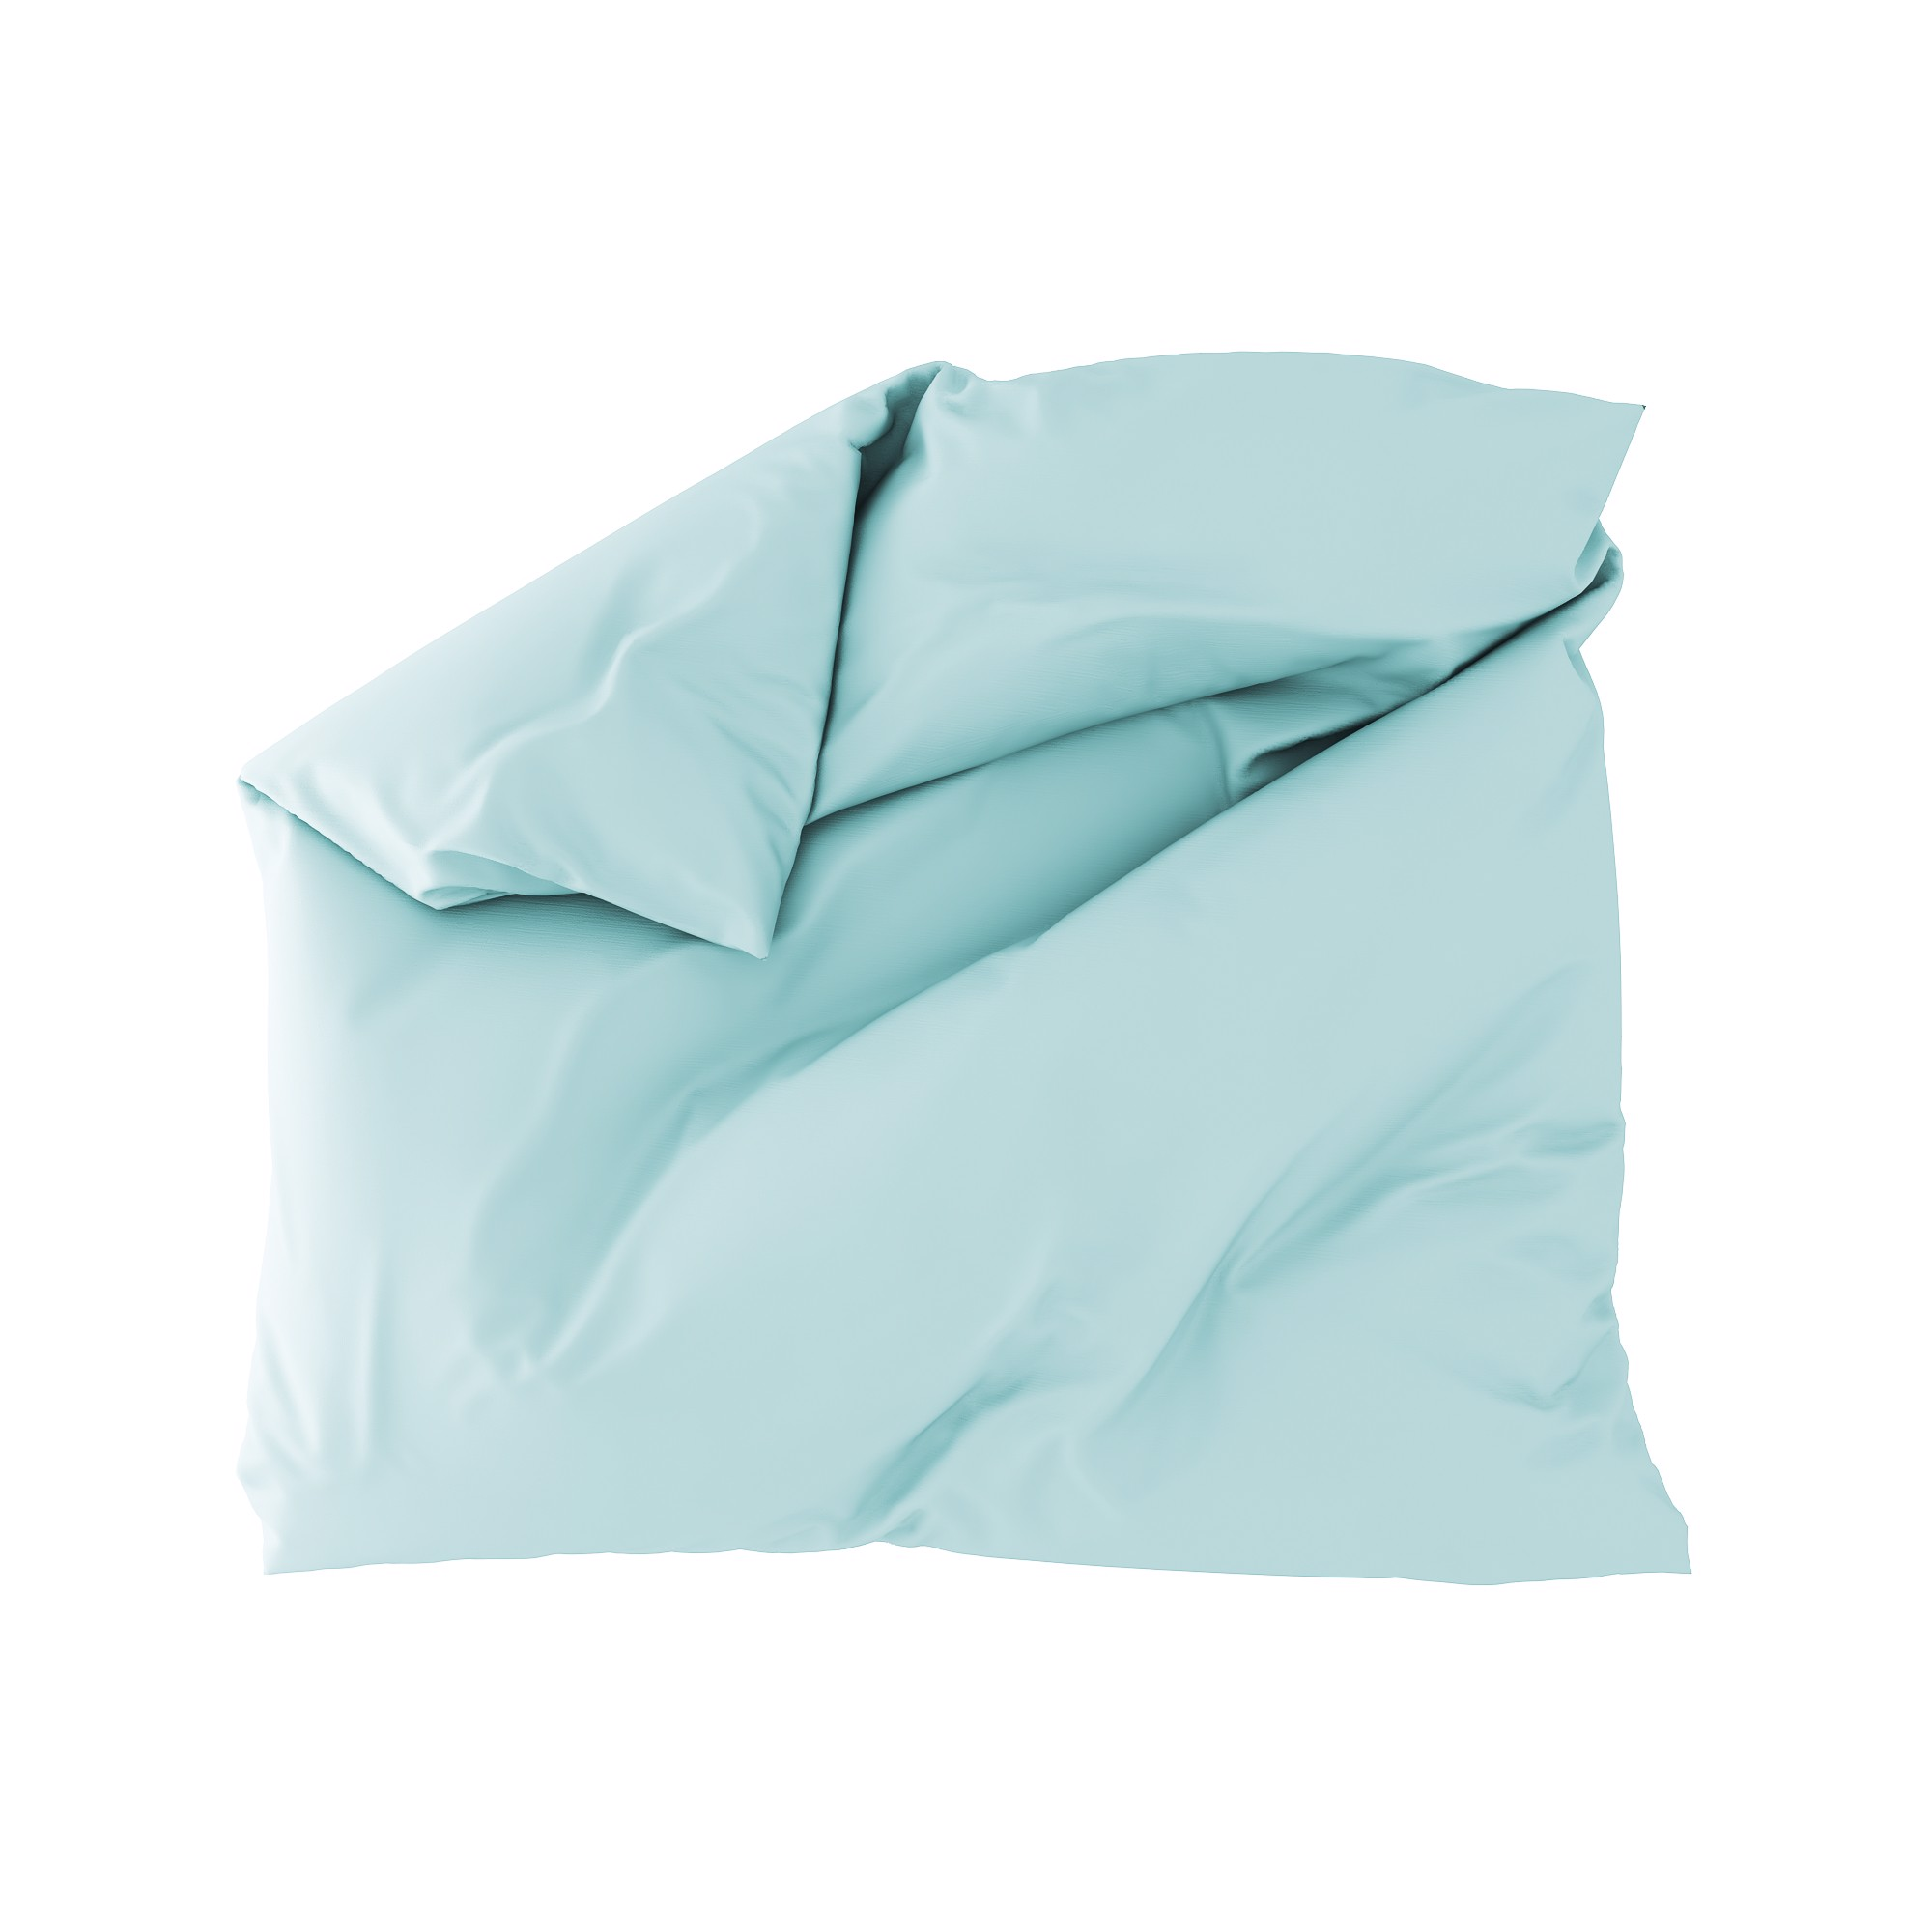 Standard duvet cover 06 Mint